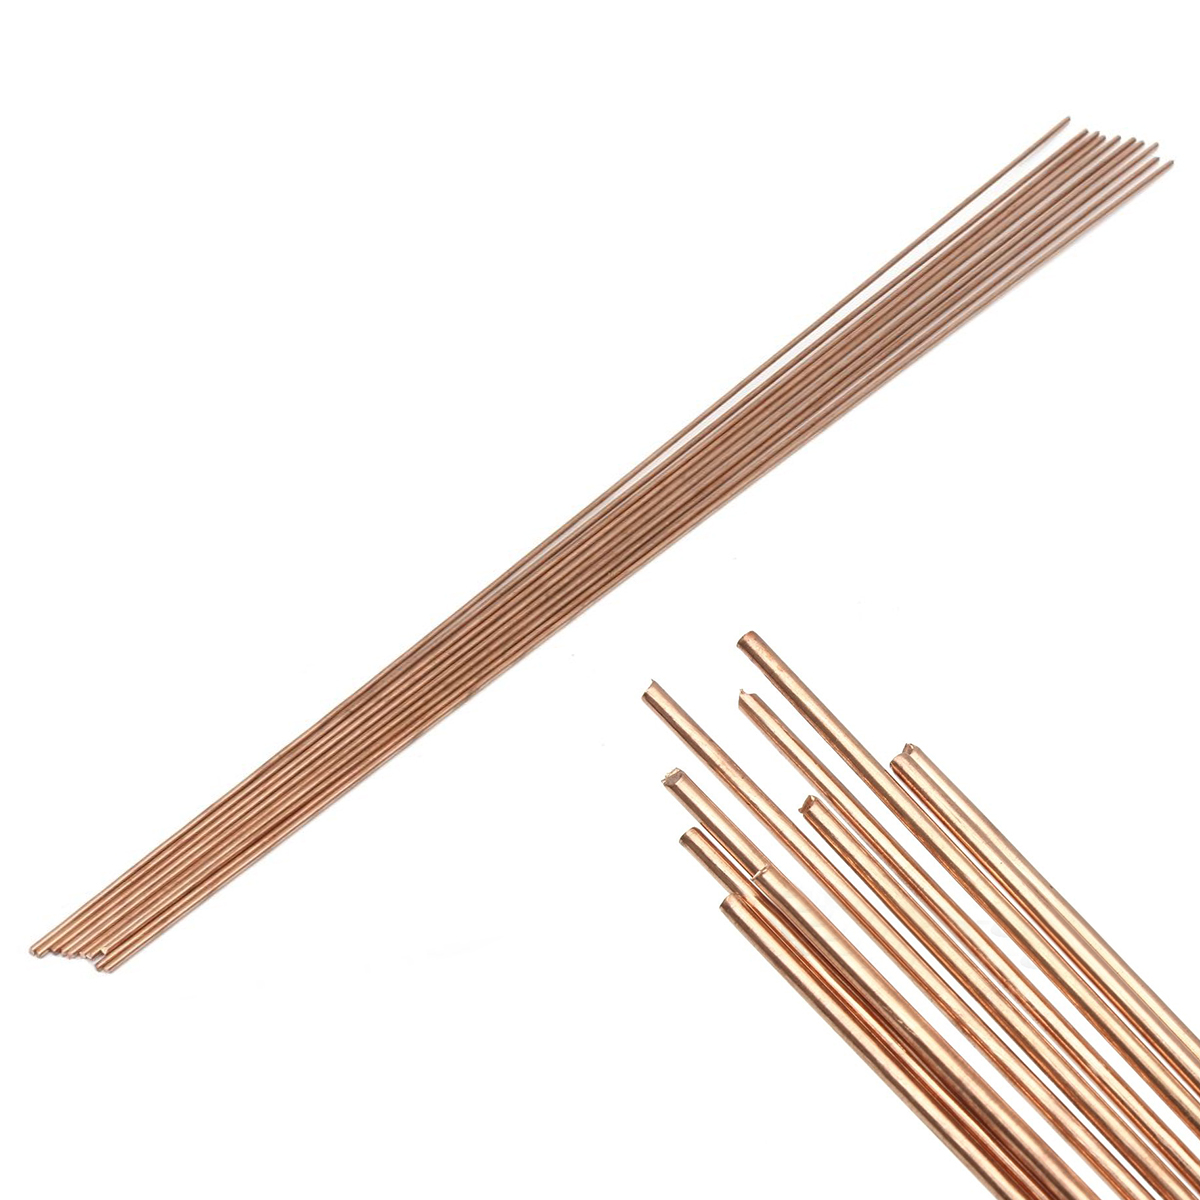 10pcs Solid Red Copper Rod Round Gas Bronze Rods 1.6x330mm For Riveting Cutting Tools 5 10 355 mm flat head carbon rod copper coated for arc air gouging 50pcs